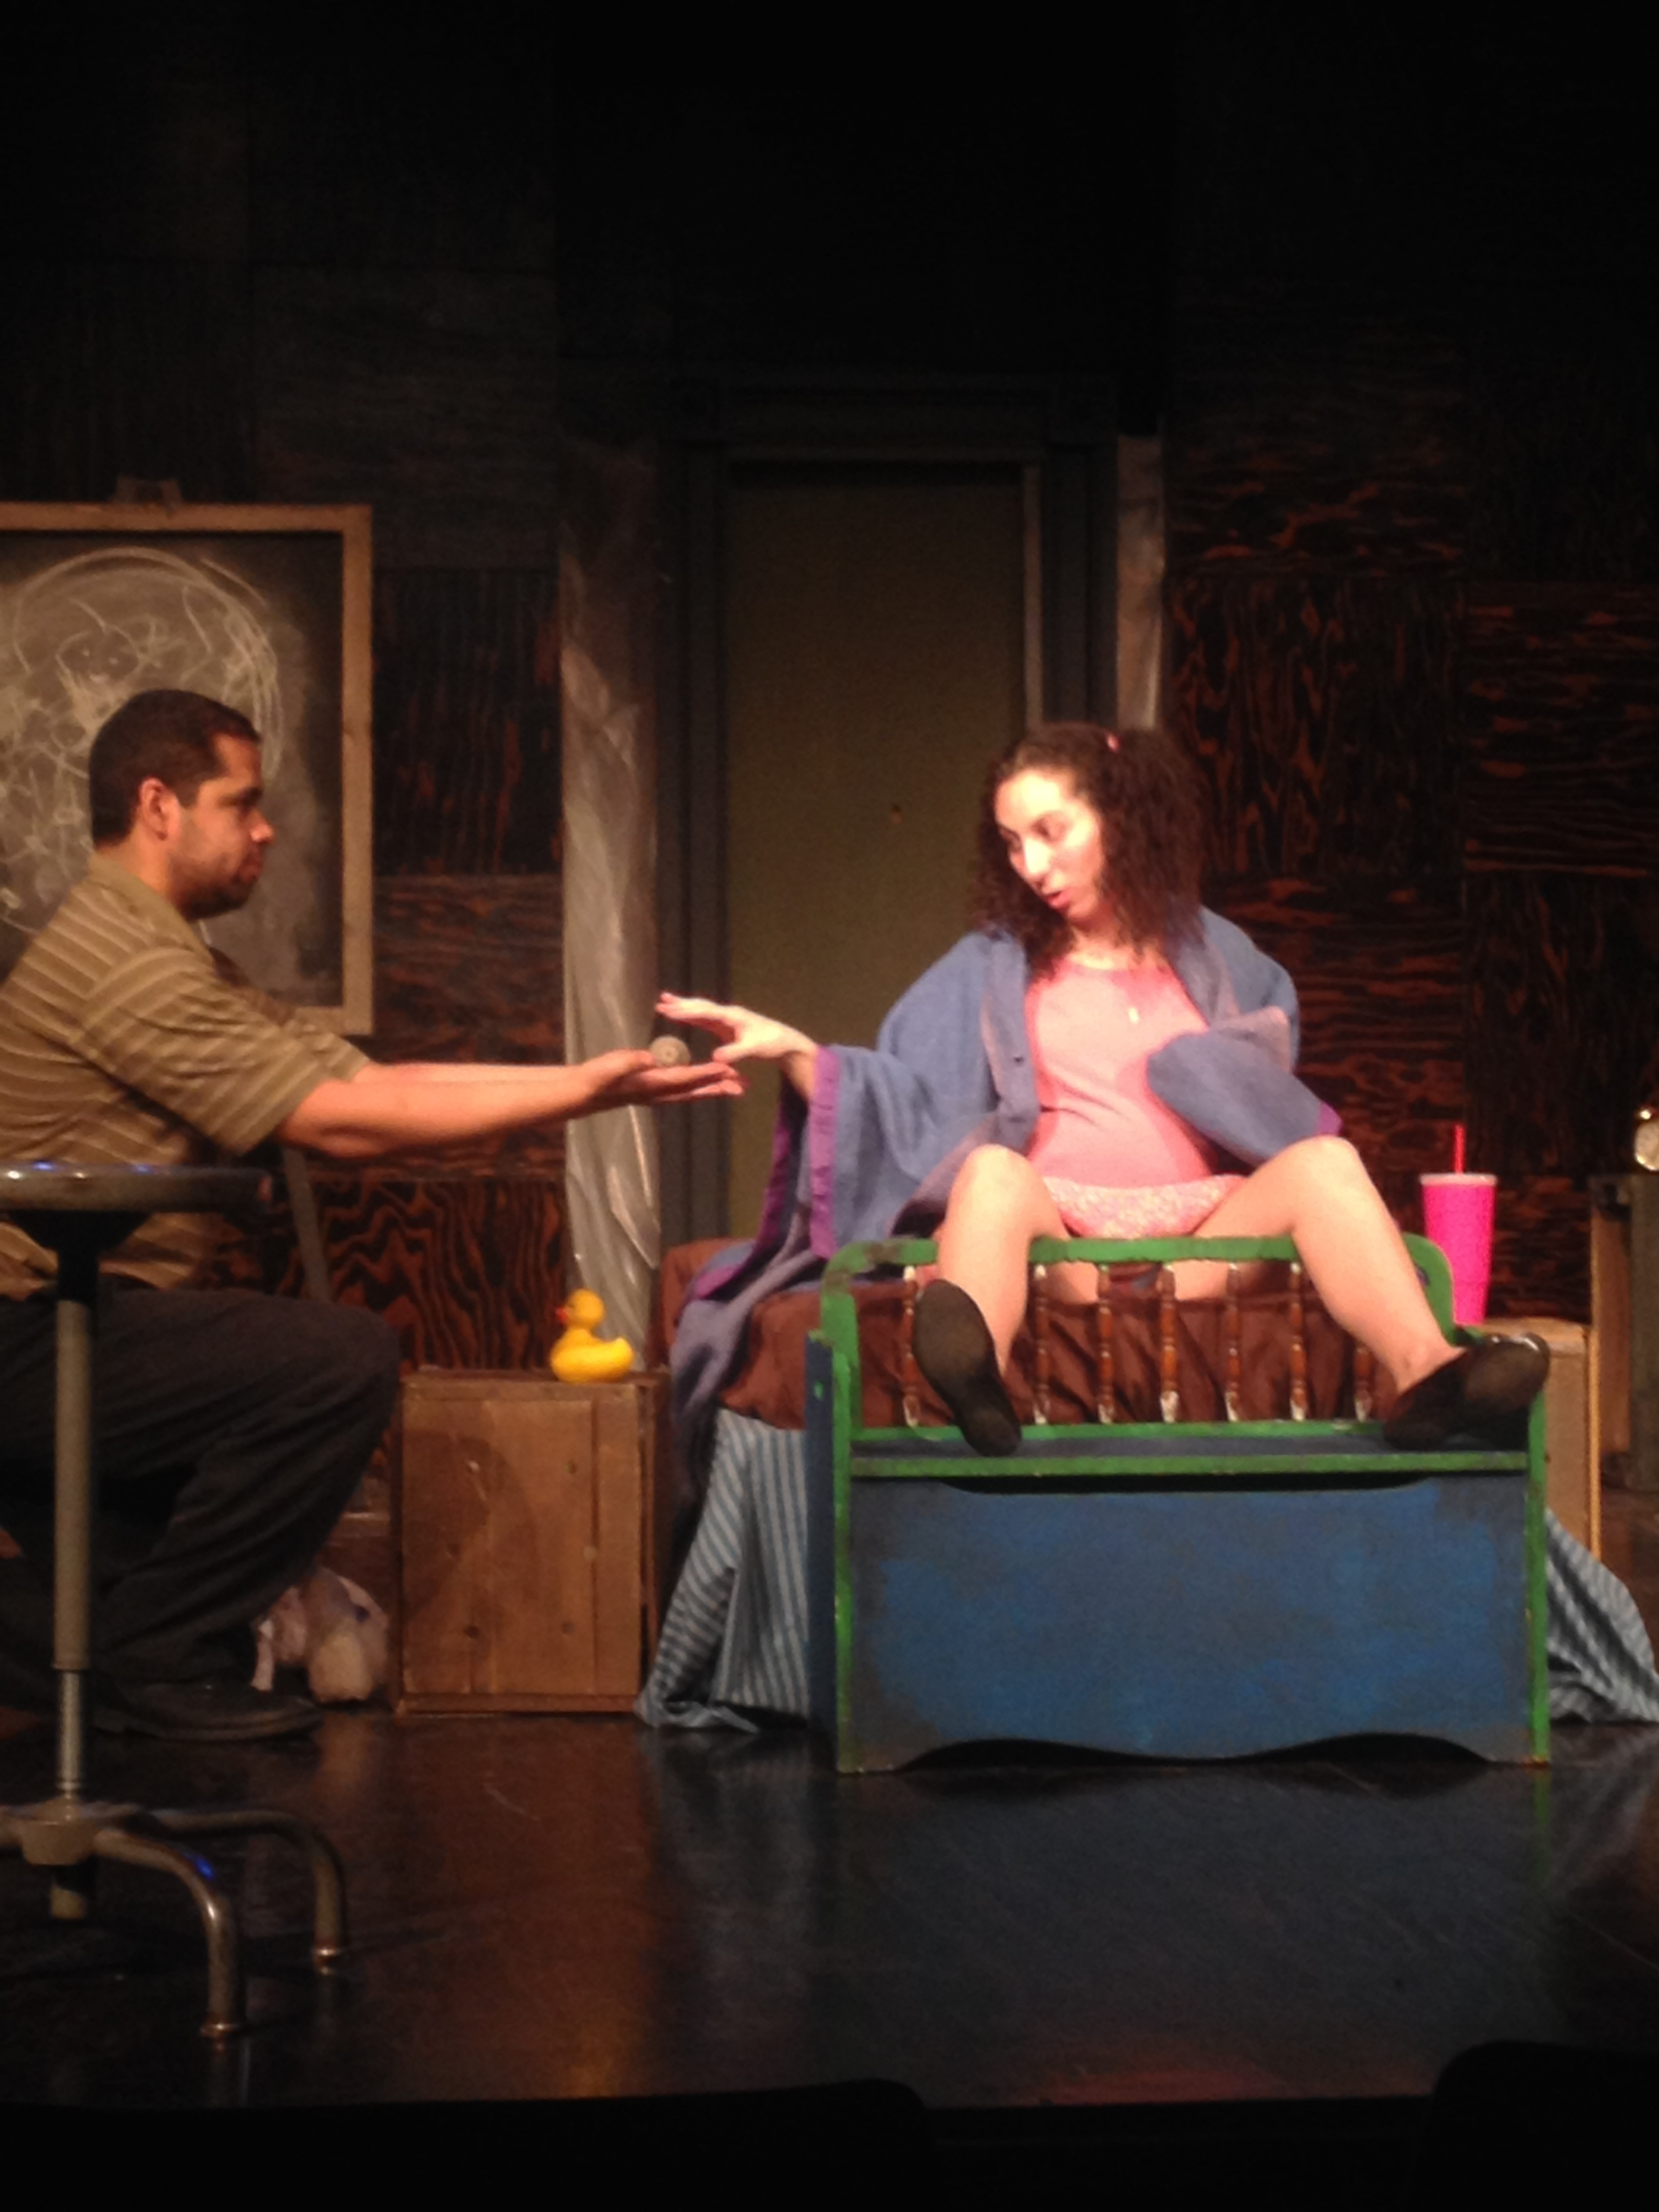 Home Free, Joanna, Directed by Nick Cotz